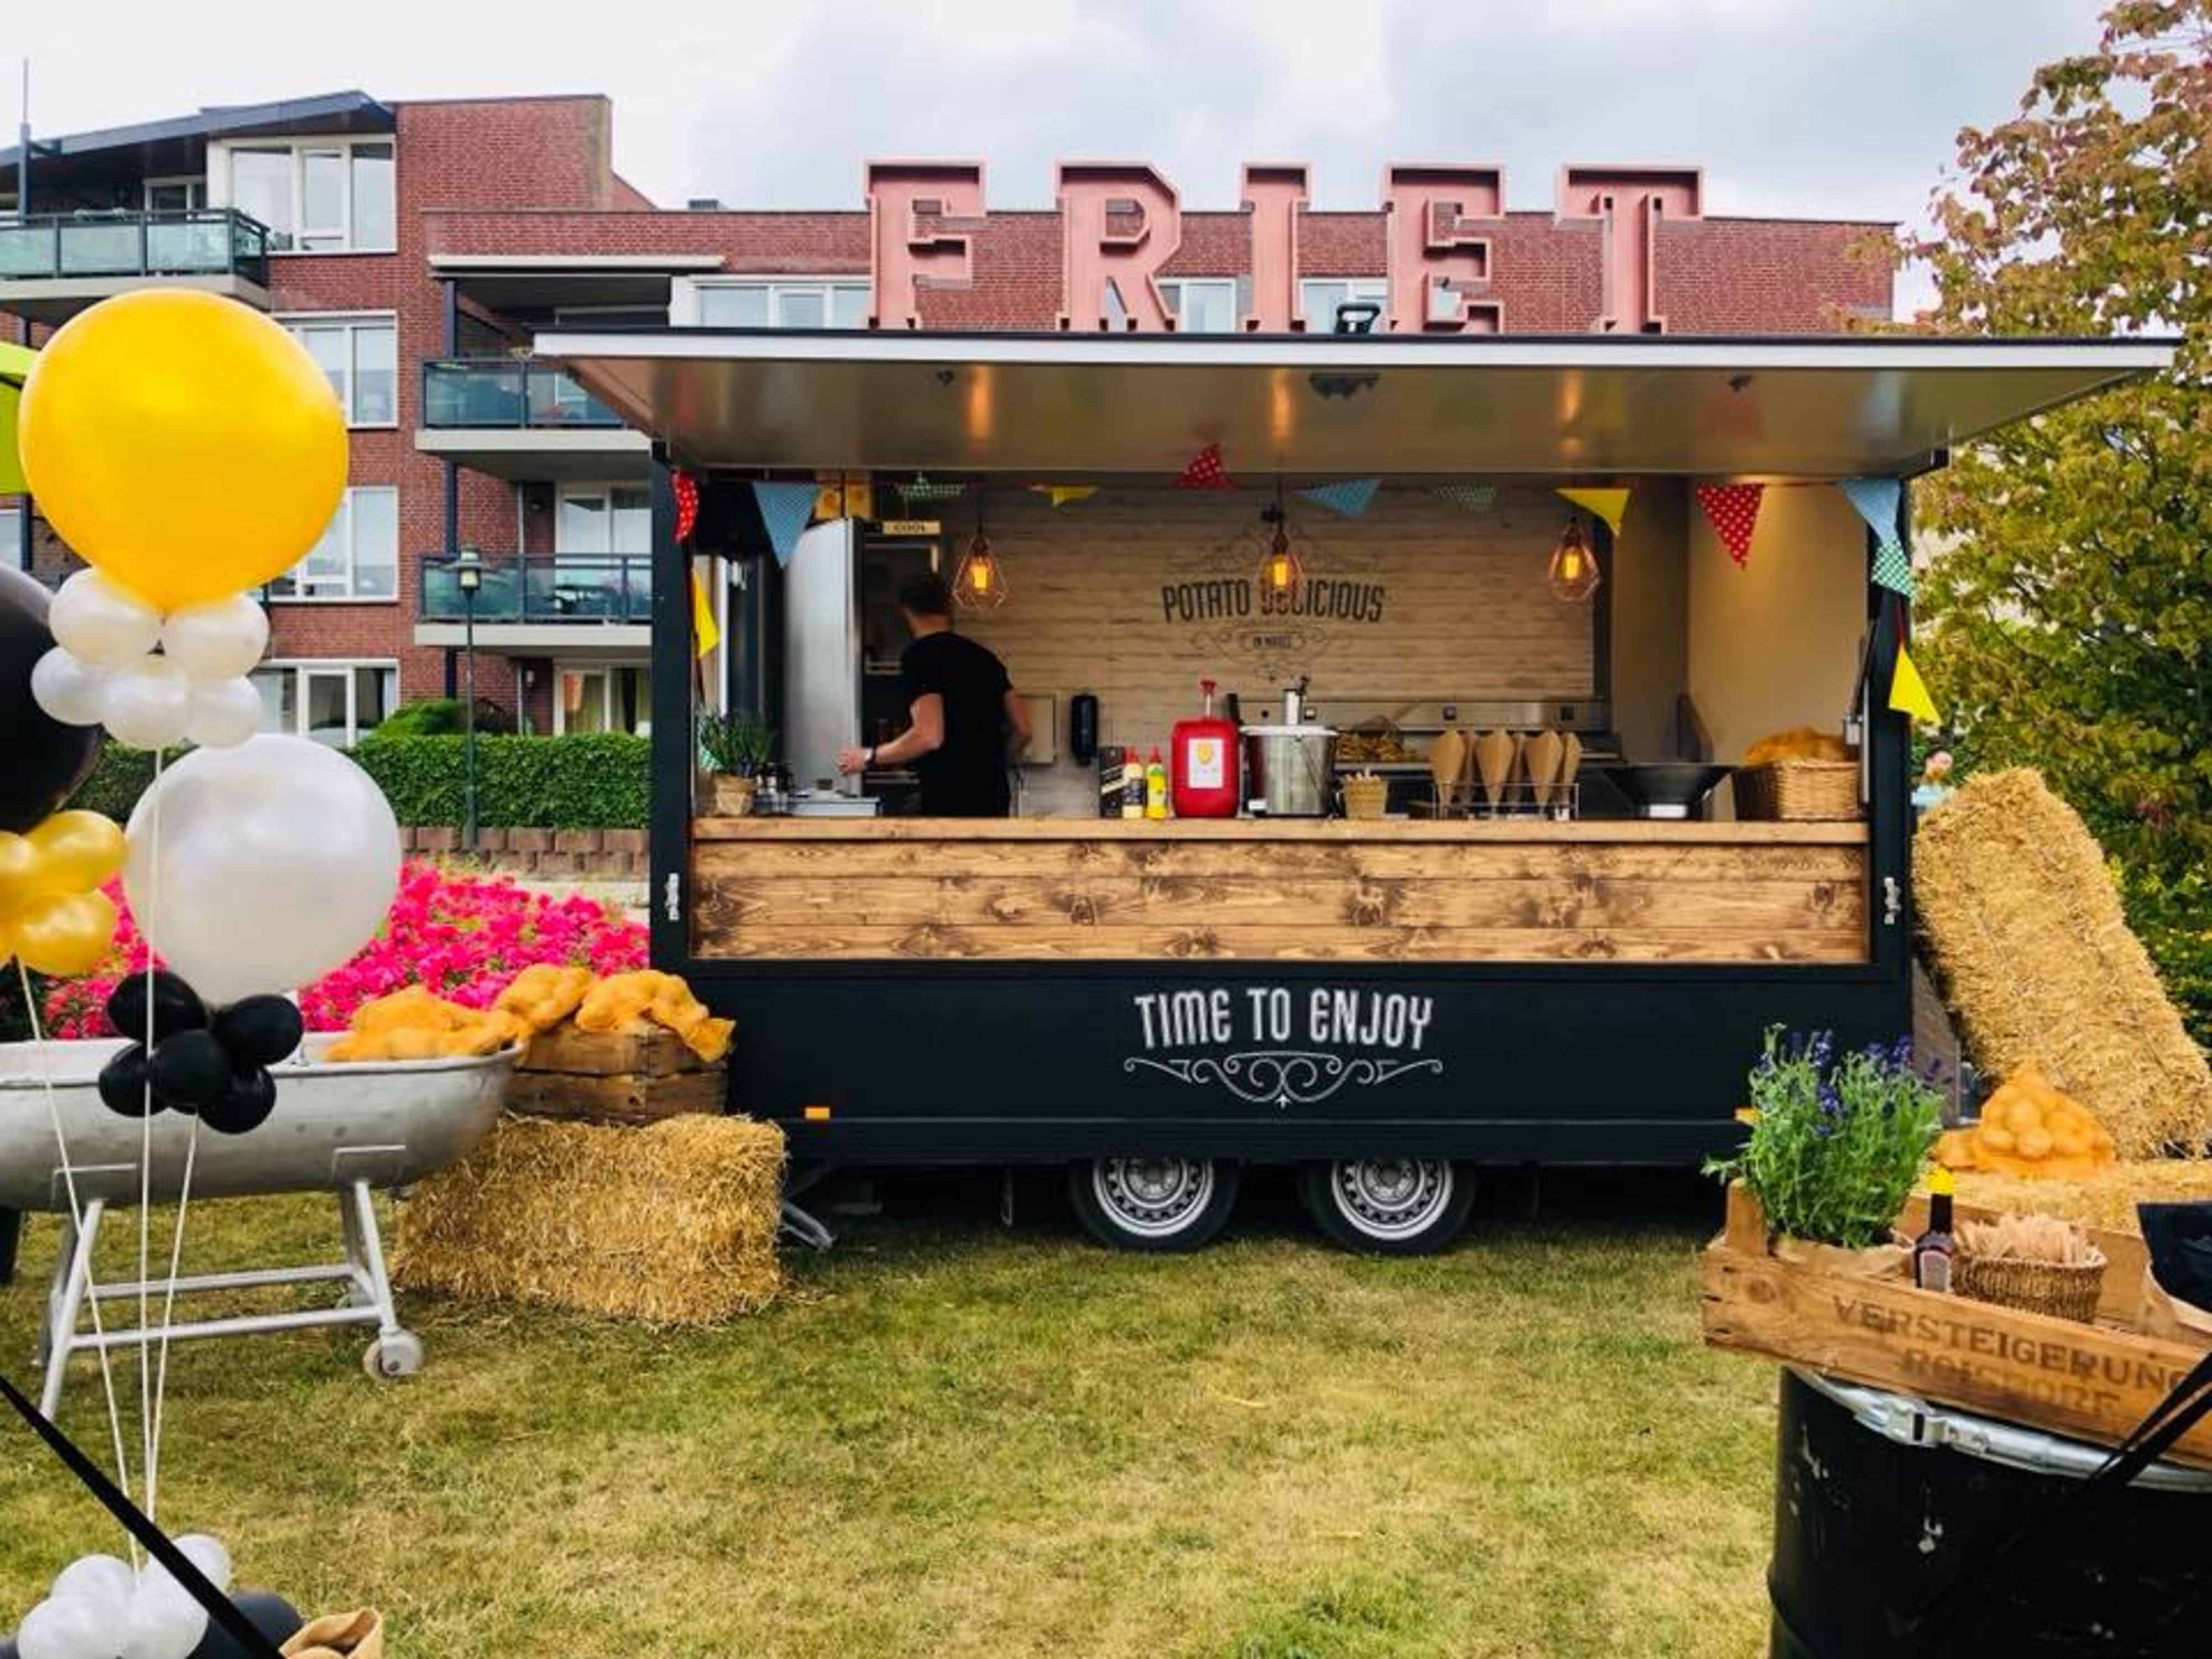 Foodtruck Bruiloft Limburg